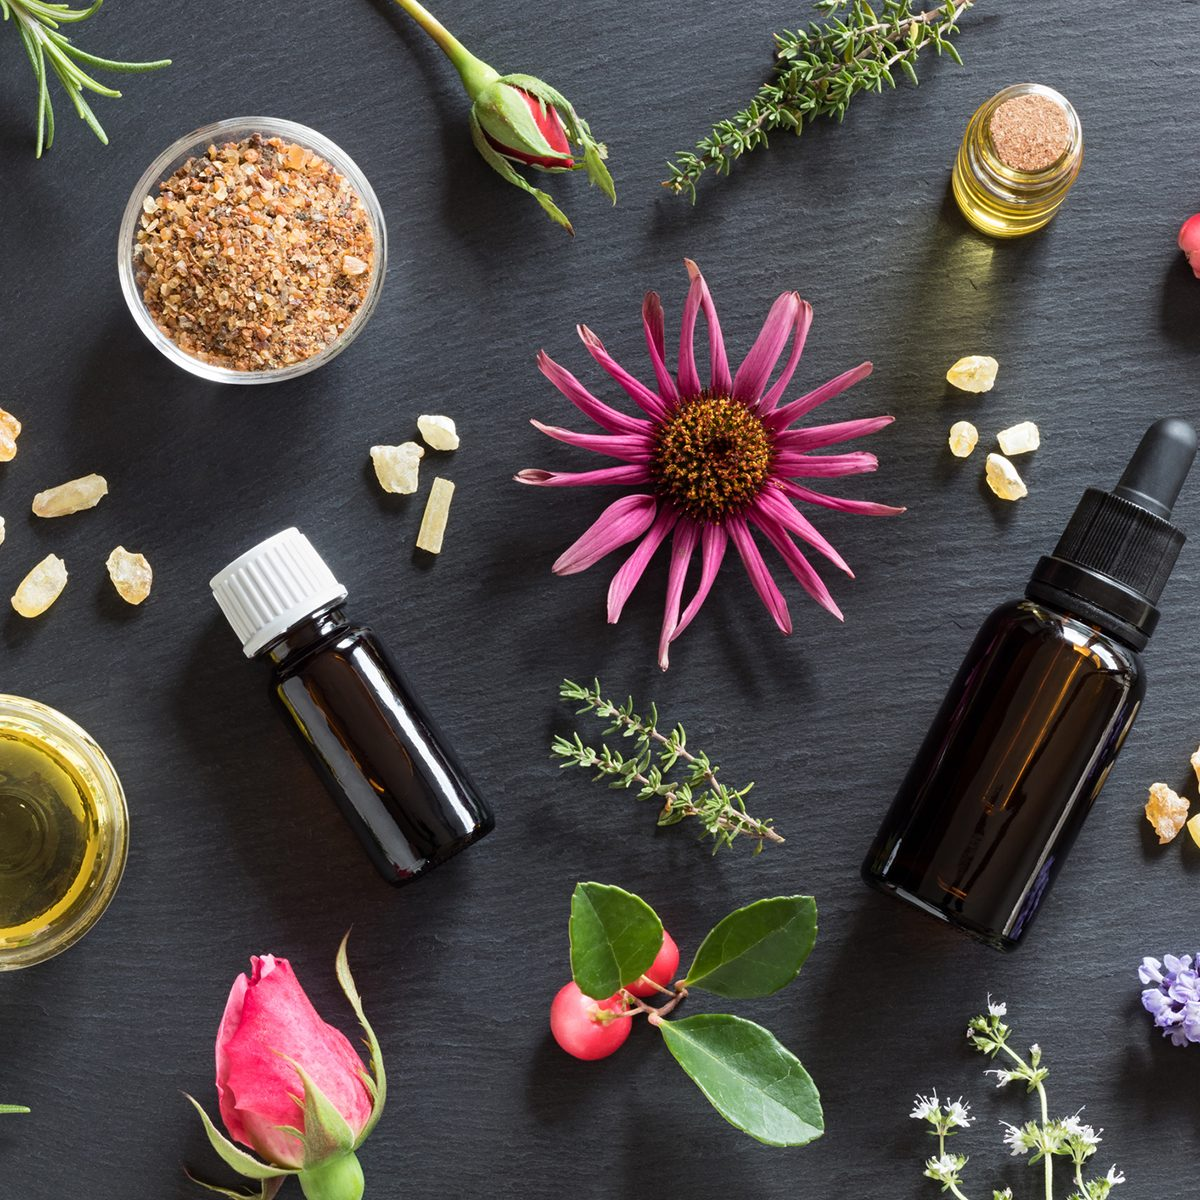 Bottles of essential oil with rosemary, thyme, creeping thyme, echinacea, wintergreen, lavender, myrrh, frankincense and rose buds on a dark background